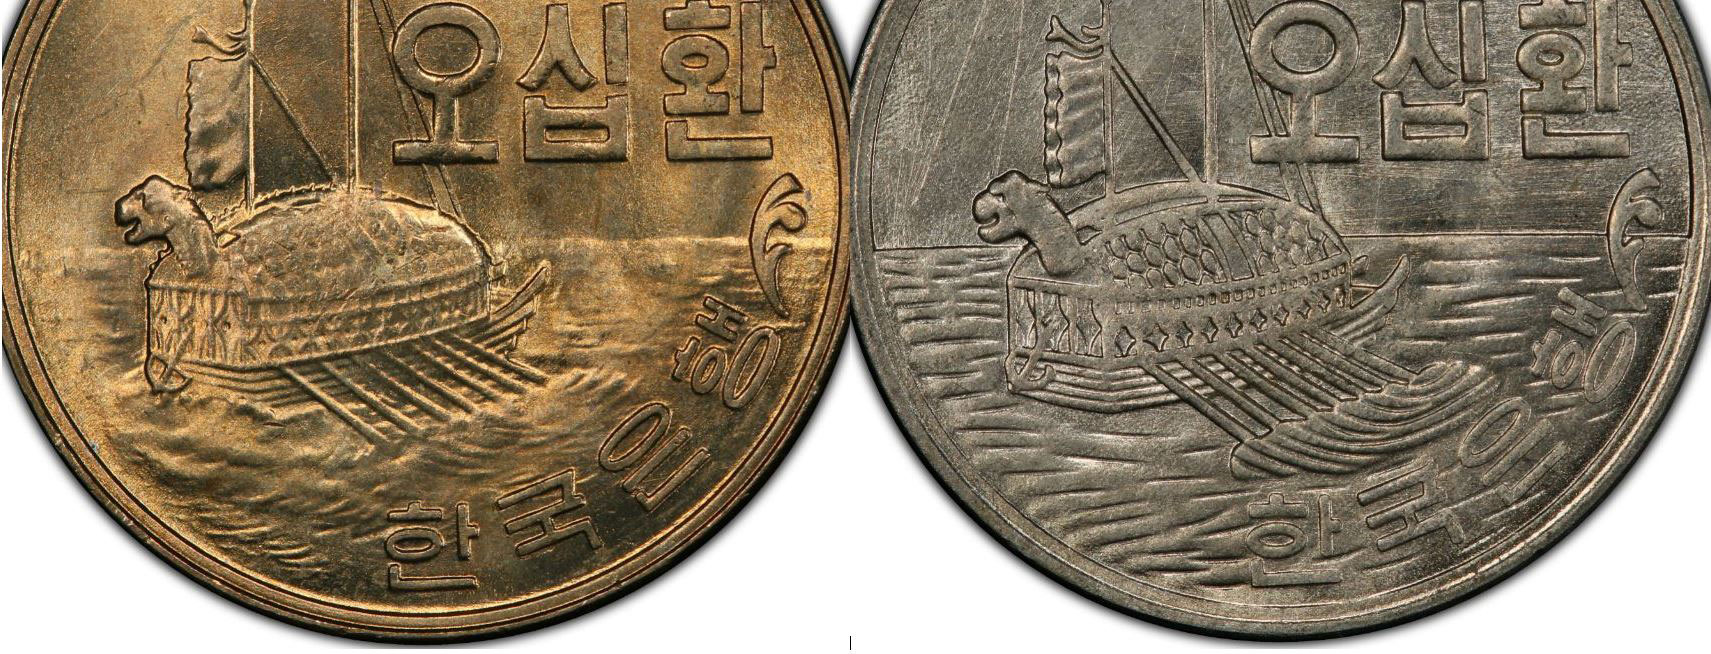 Side-by-side views of authentic (left) and counterfeit (right) South Korea 1959 50 hwan coins - PCGS